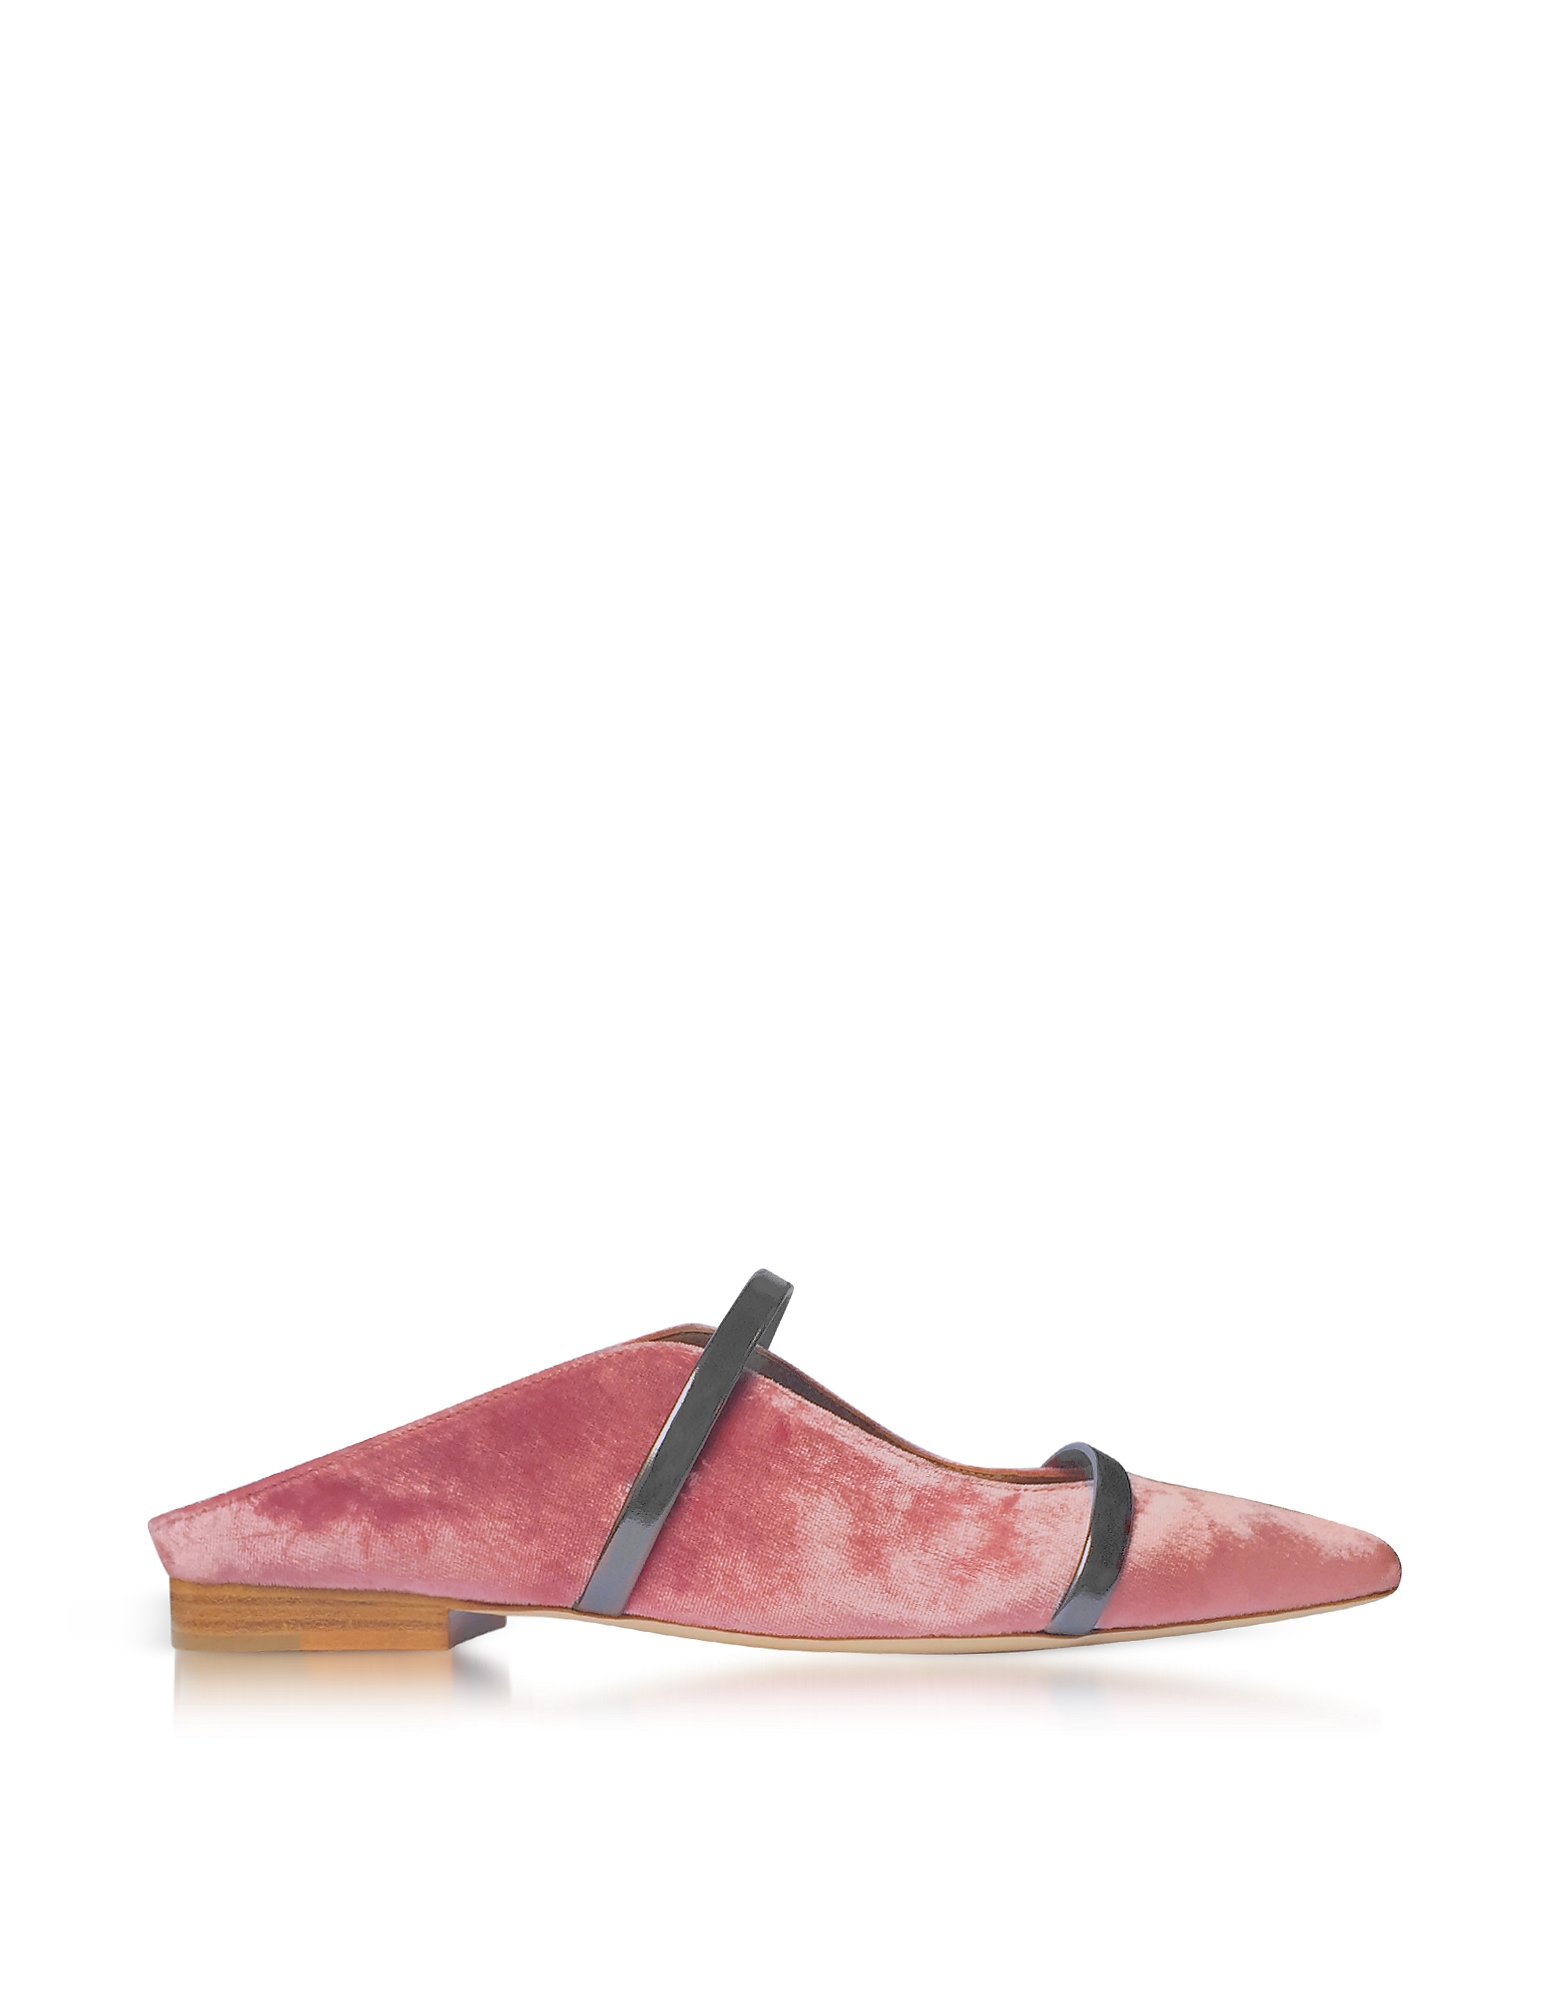 Malone Souliers Shoes, Maureen Flat Pink and Charcoal Velvet and Leather Mules